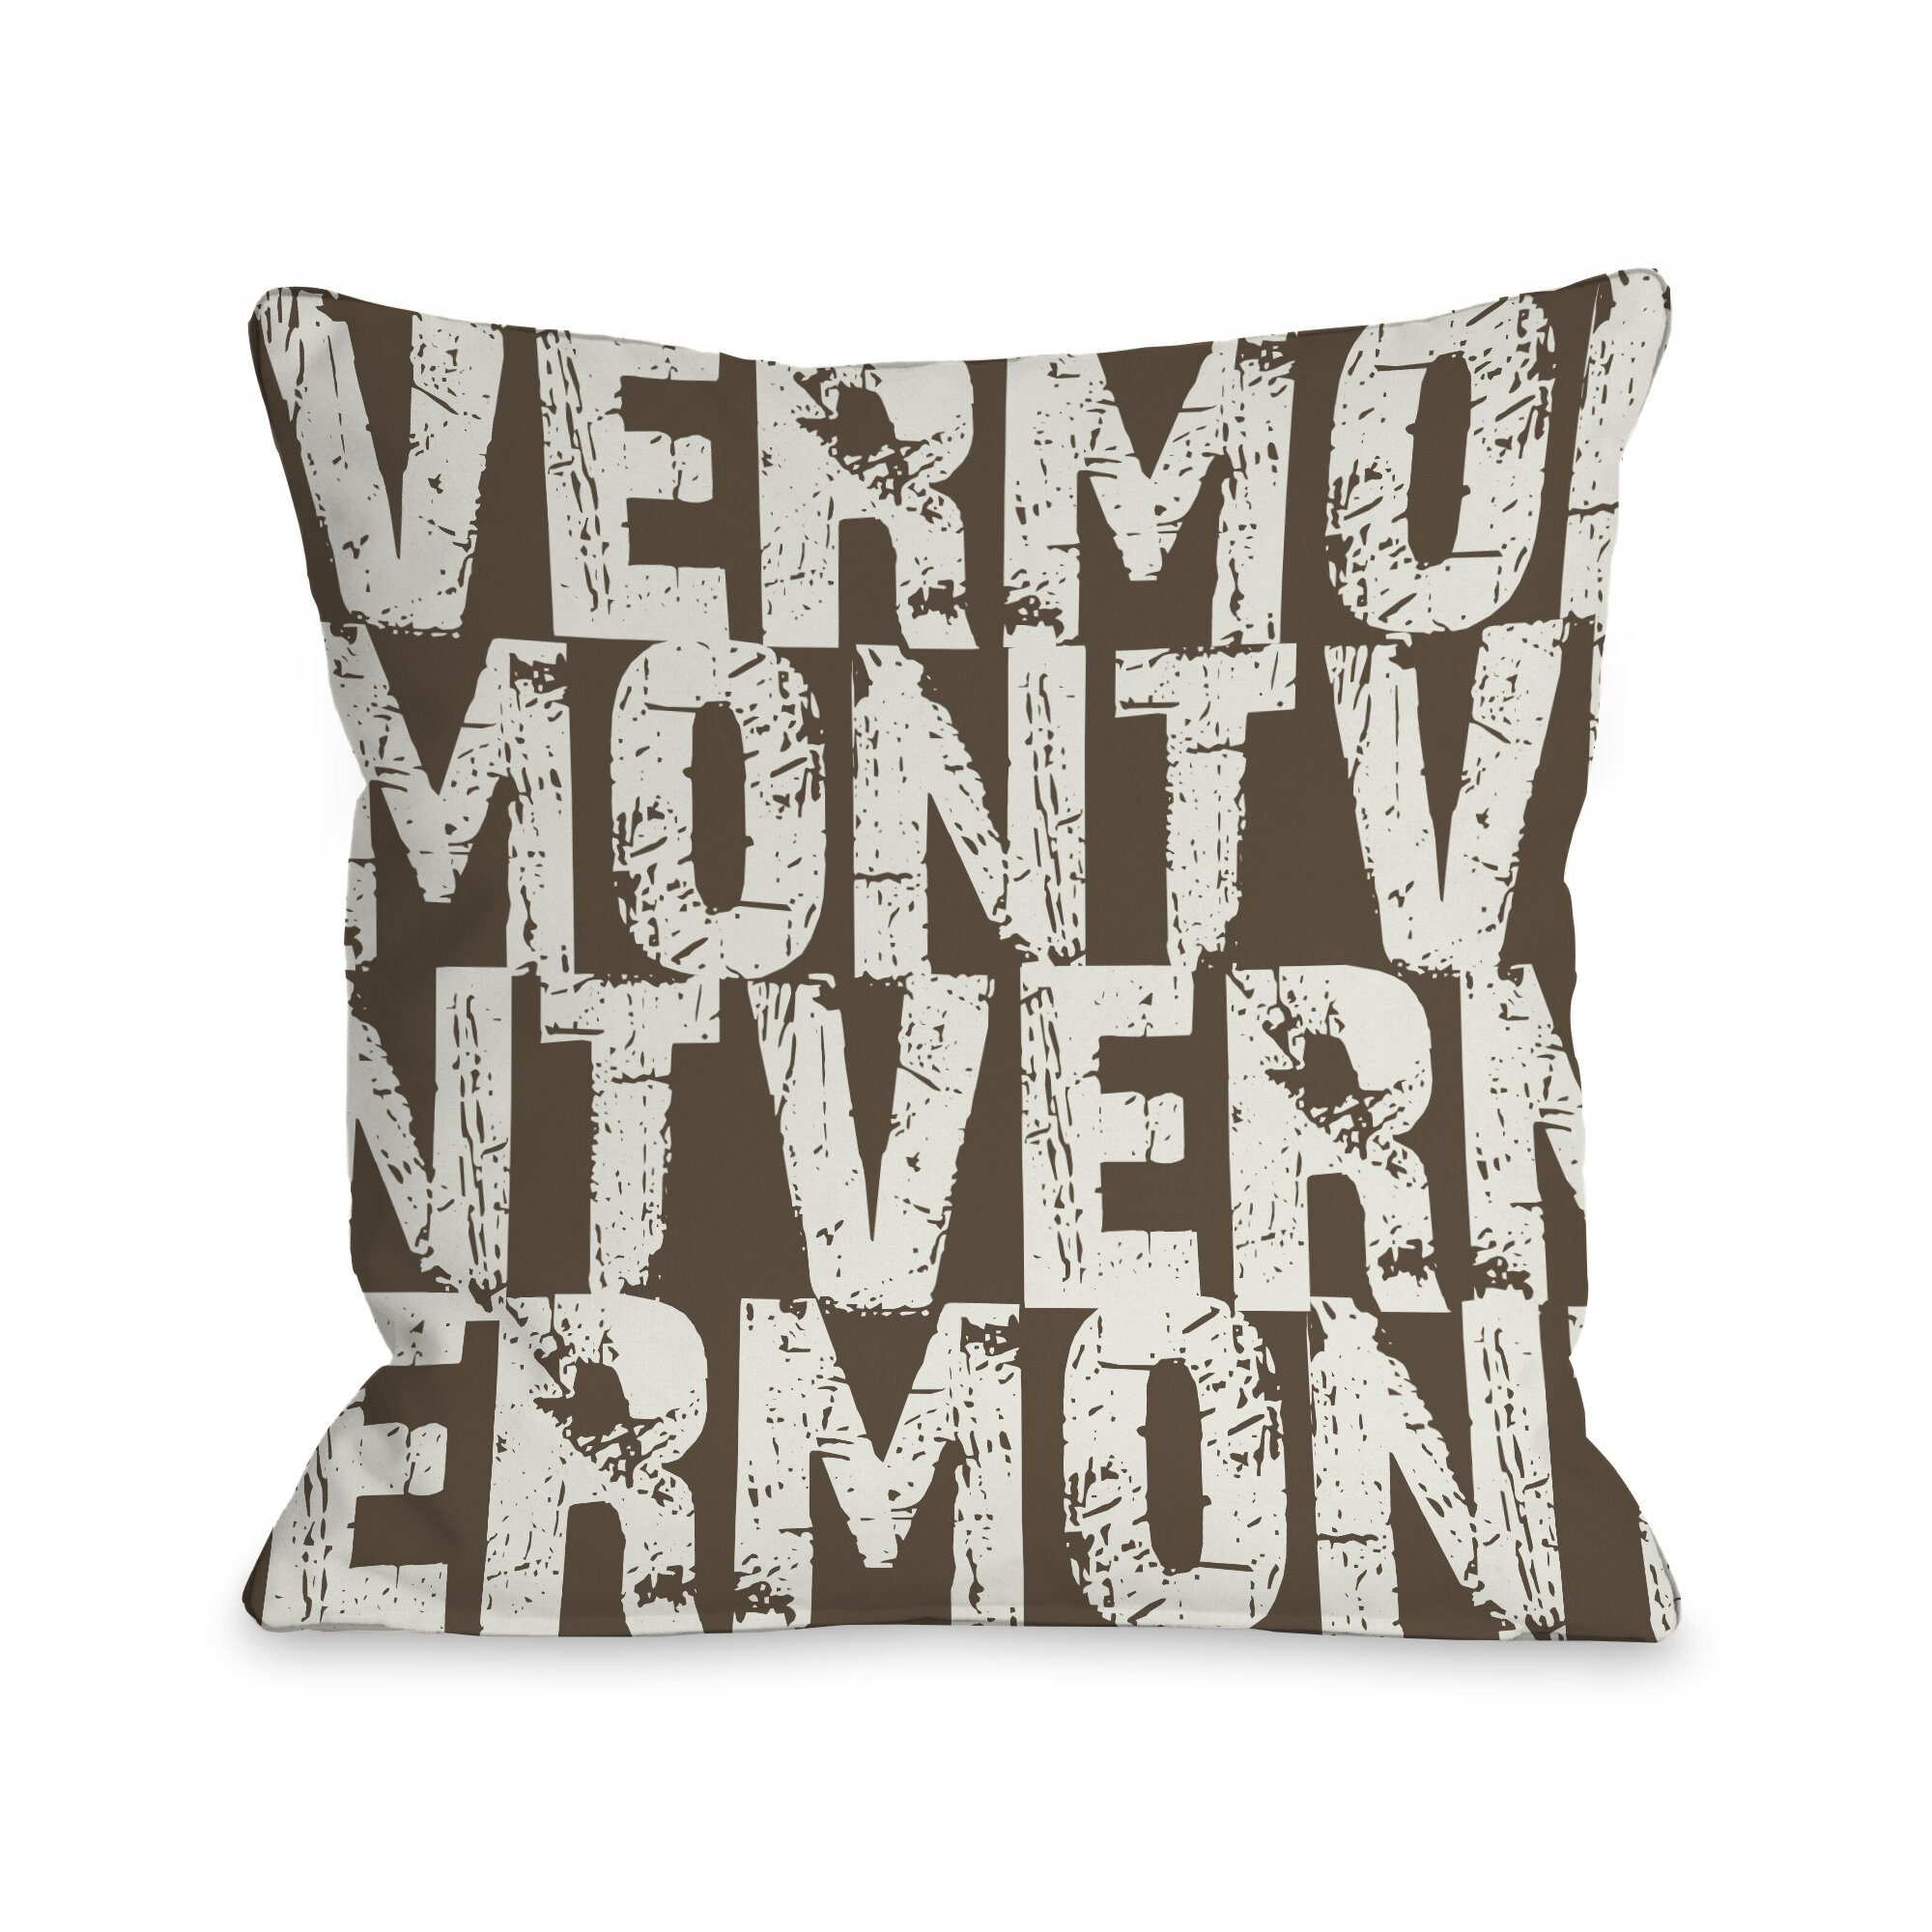 Decorative Pillows With States : One Bella Casa Vermont State Throw Pillow AllModern